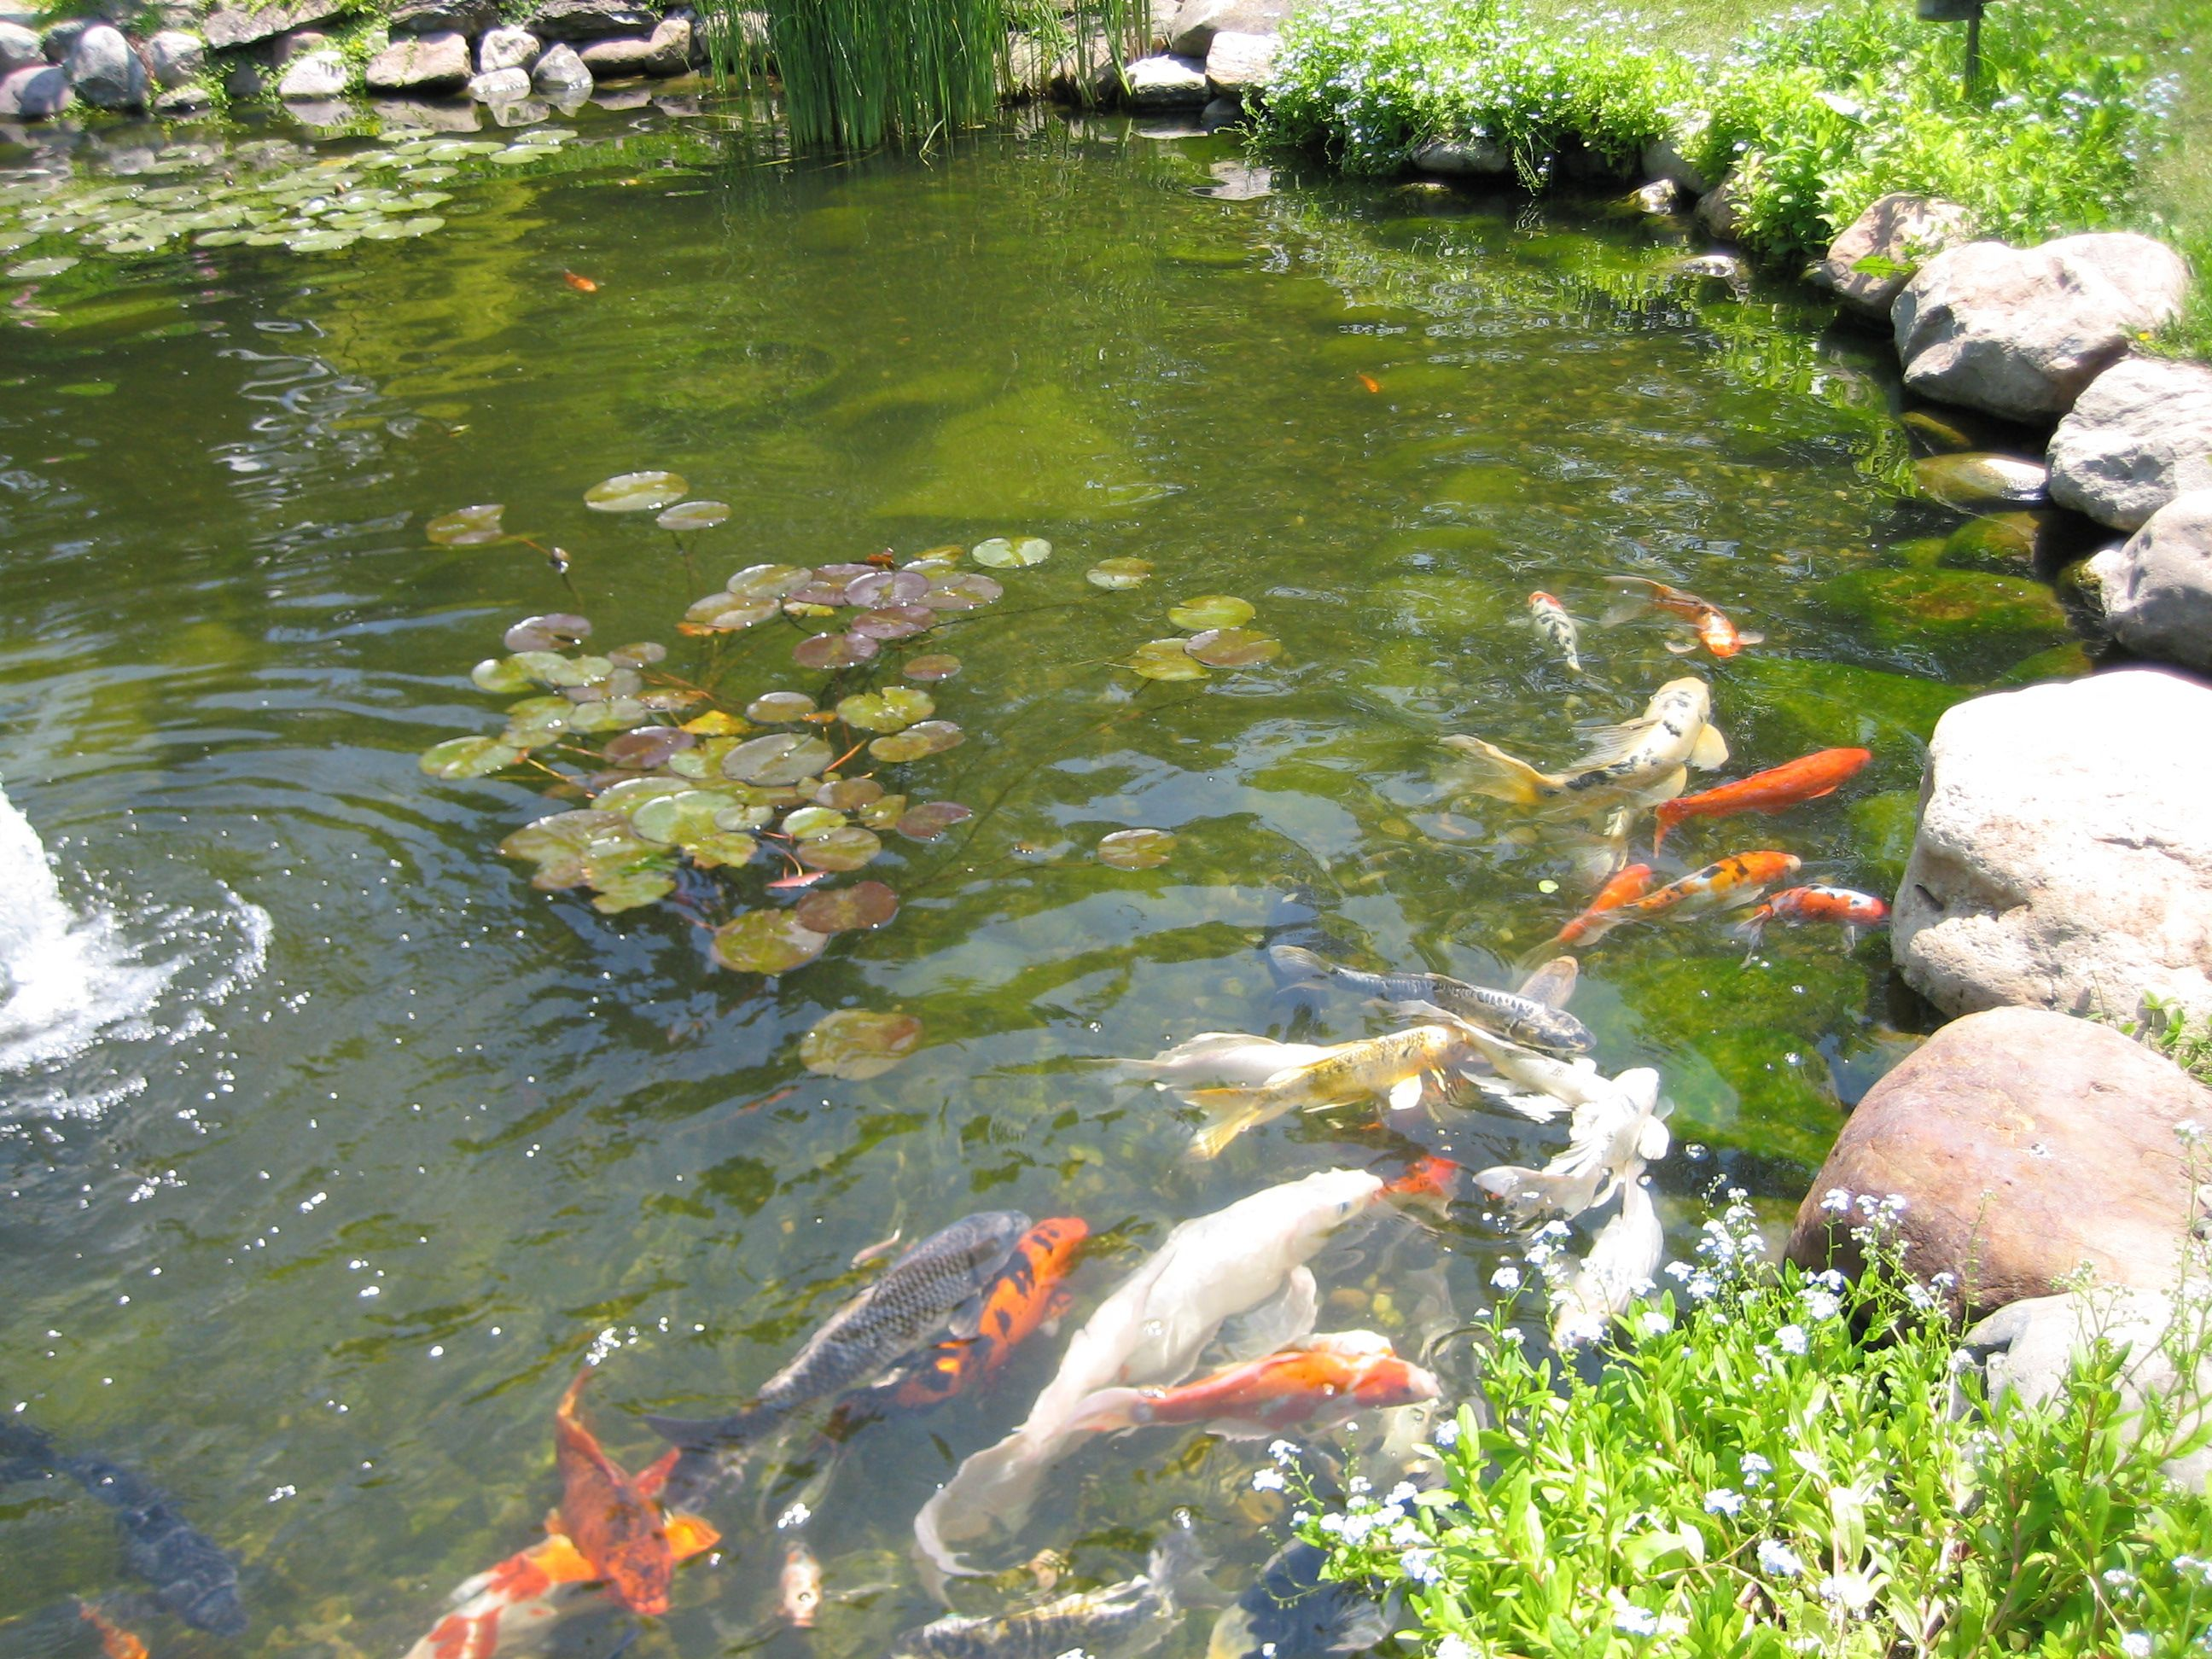 Landscaping waterfalls and fish ponds koi fish for Koi ponds and gardens